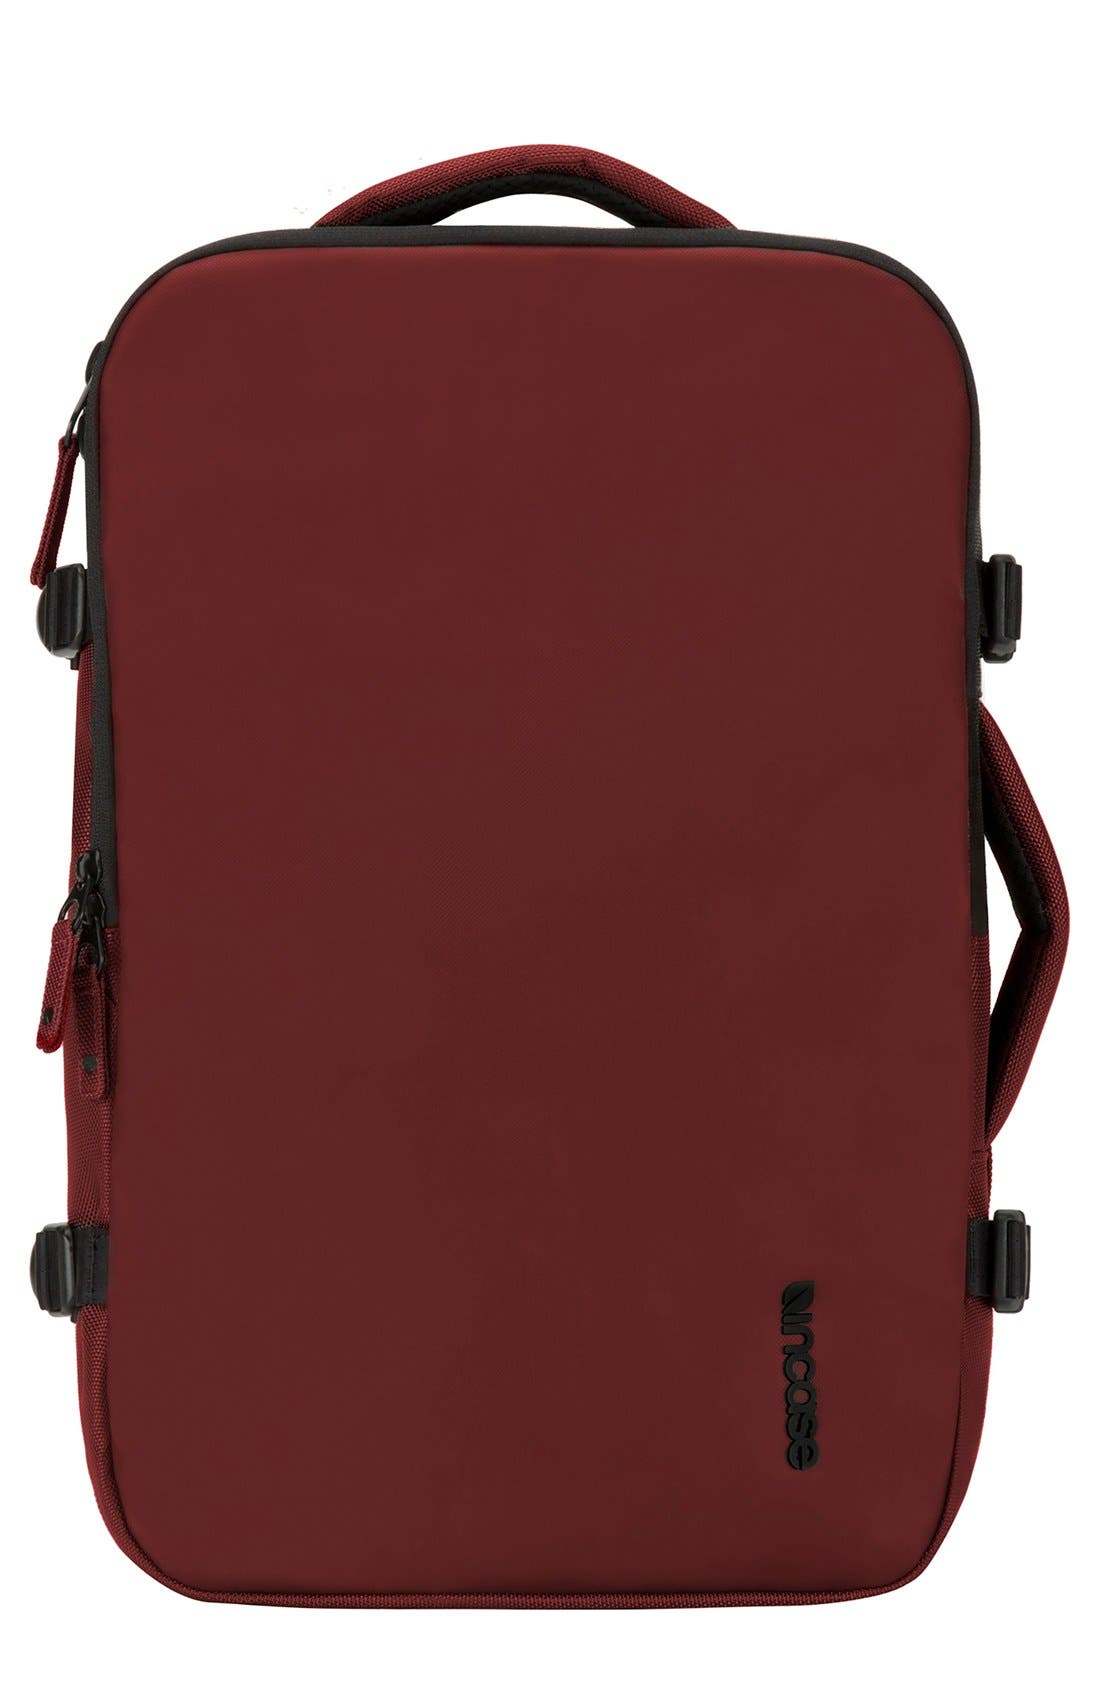 VIA Backpack,                         Main,                         color, Deep Red